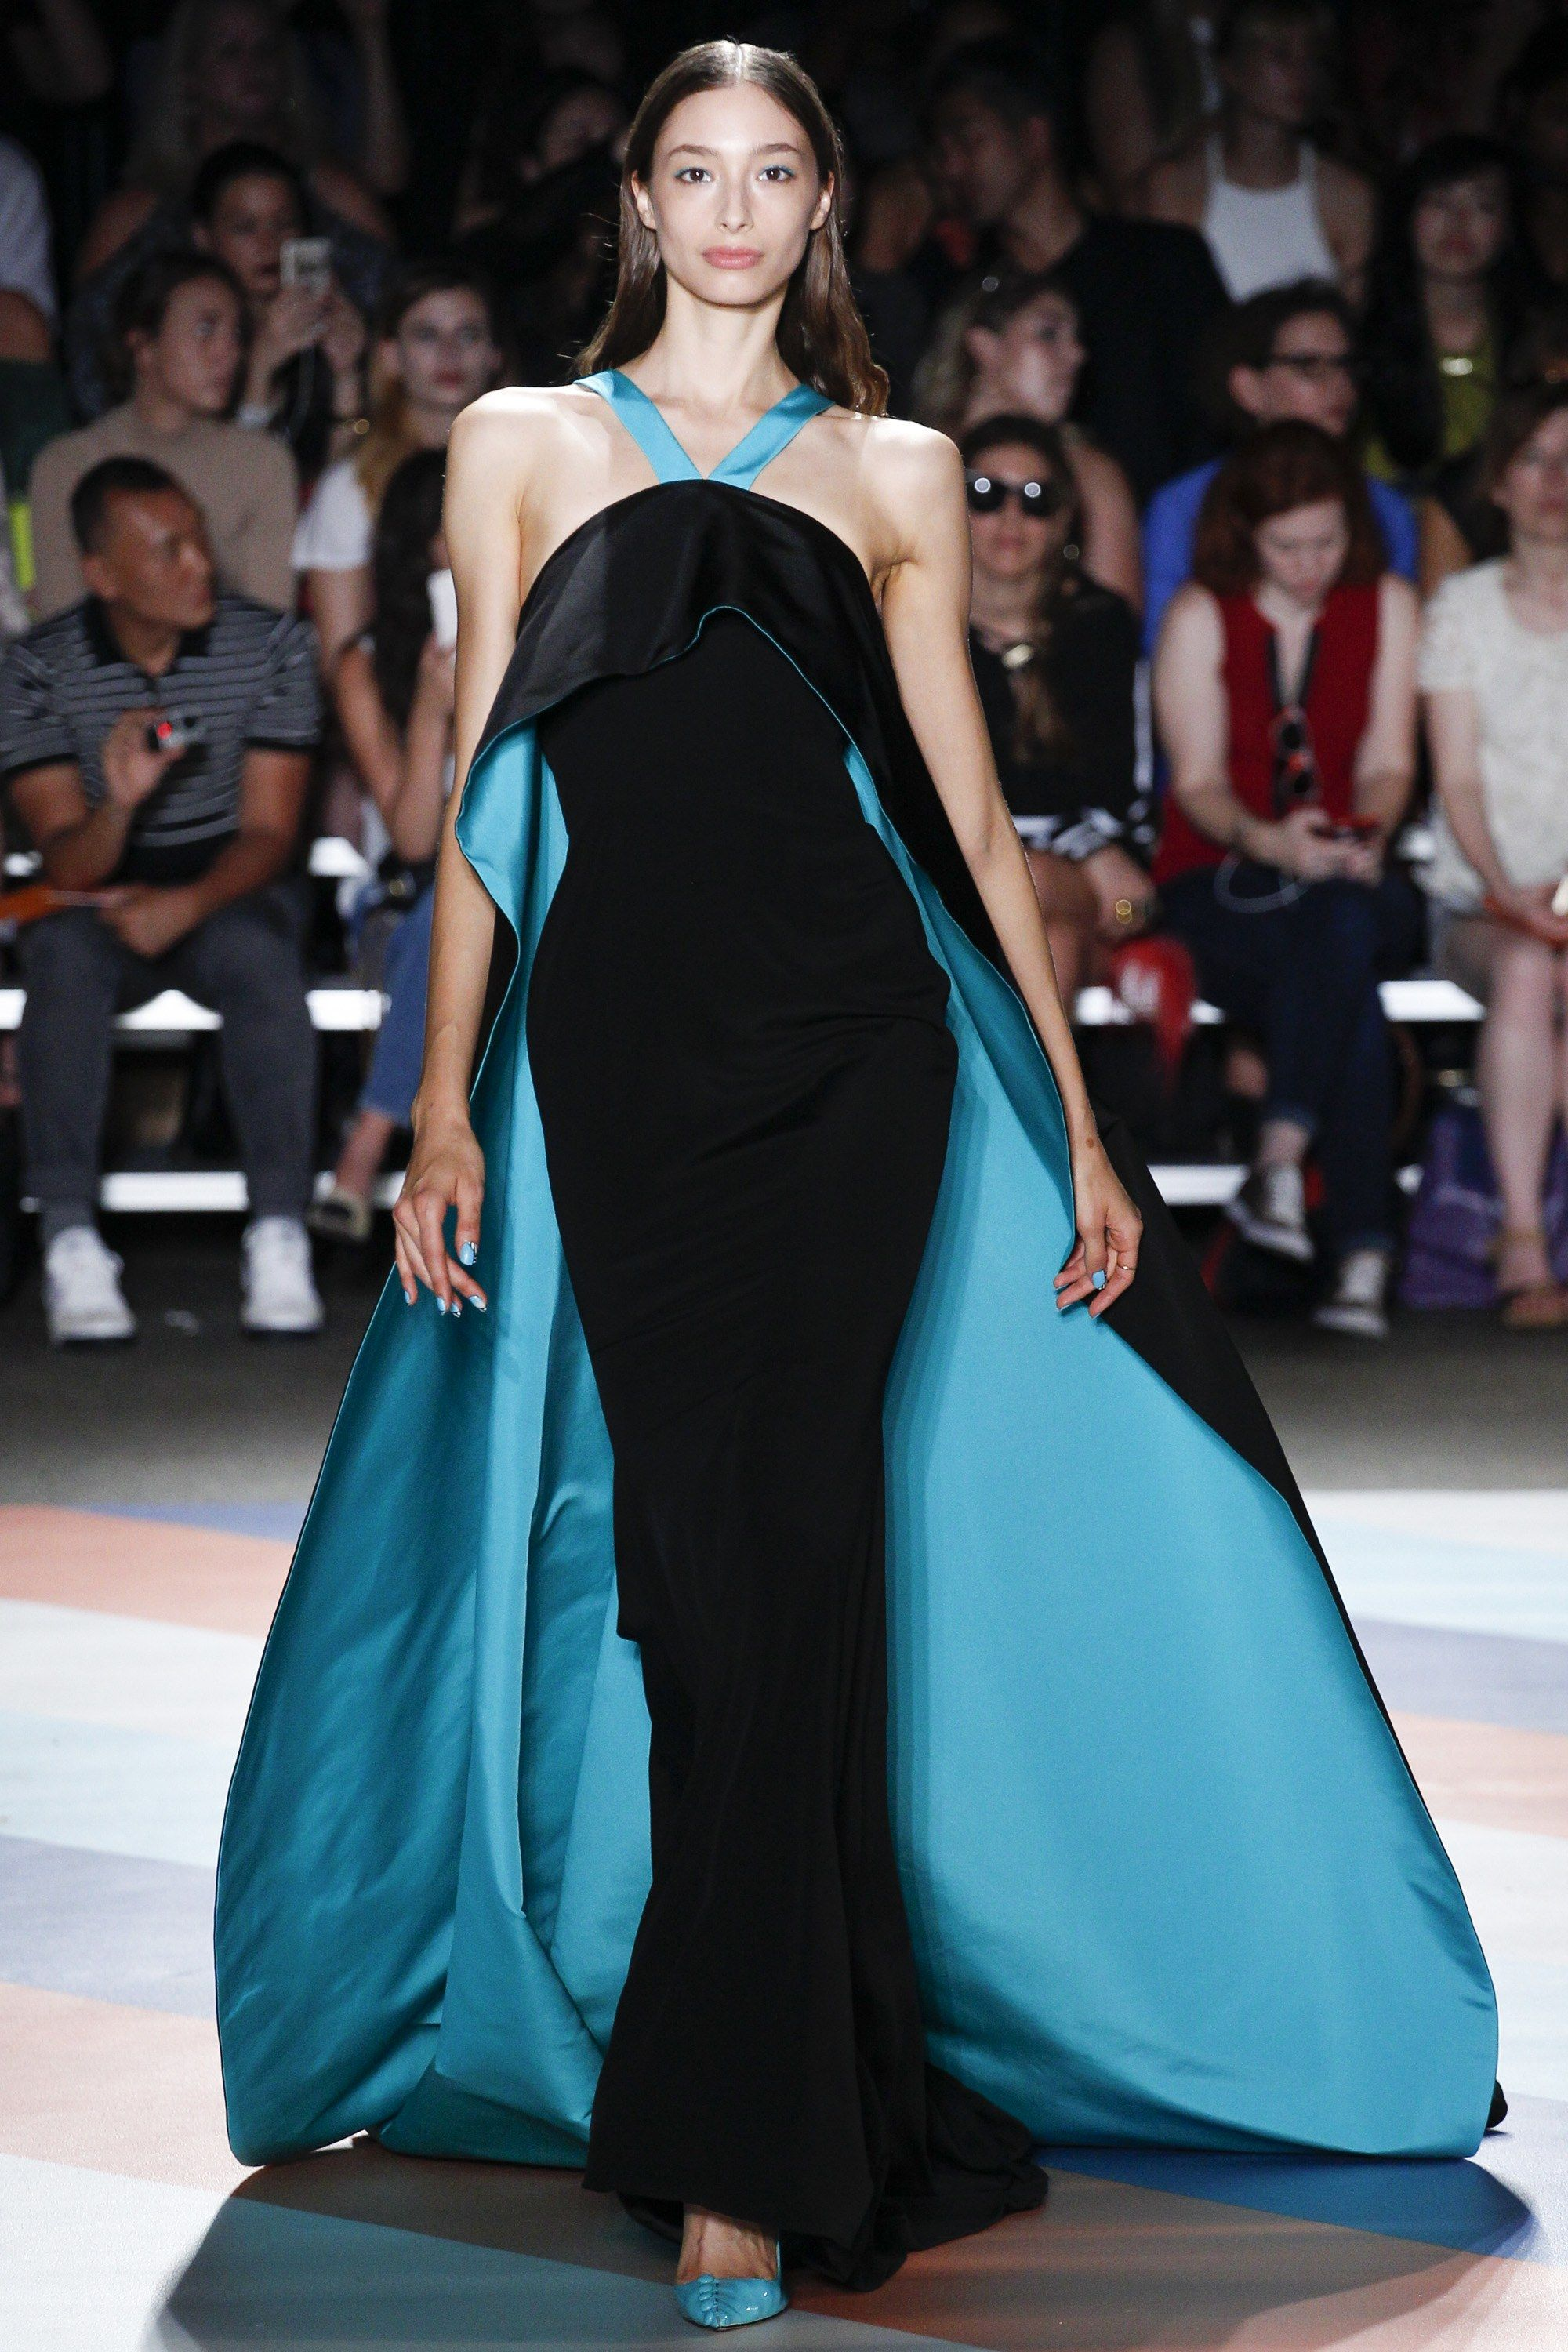 Christian Siriano Spring 2017 Ready-to-Wear Fashion Show | Christian ...